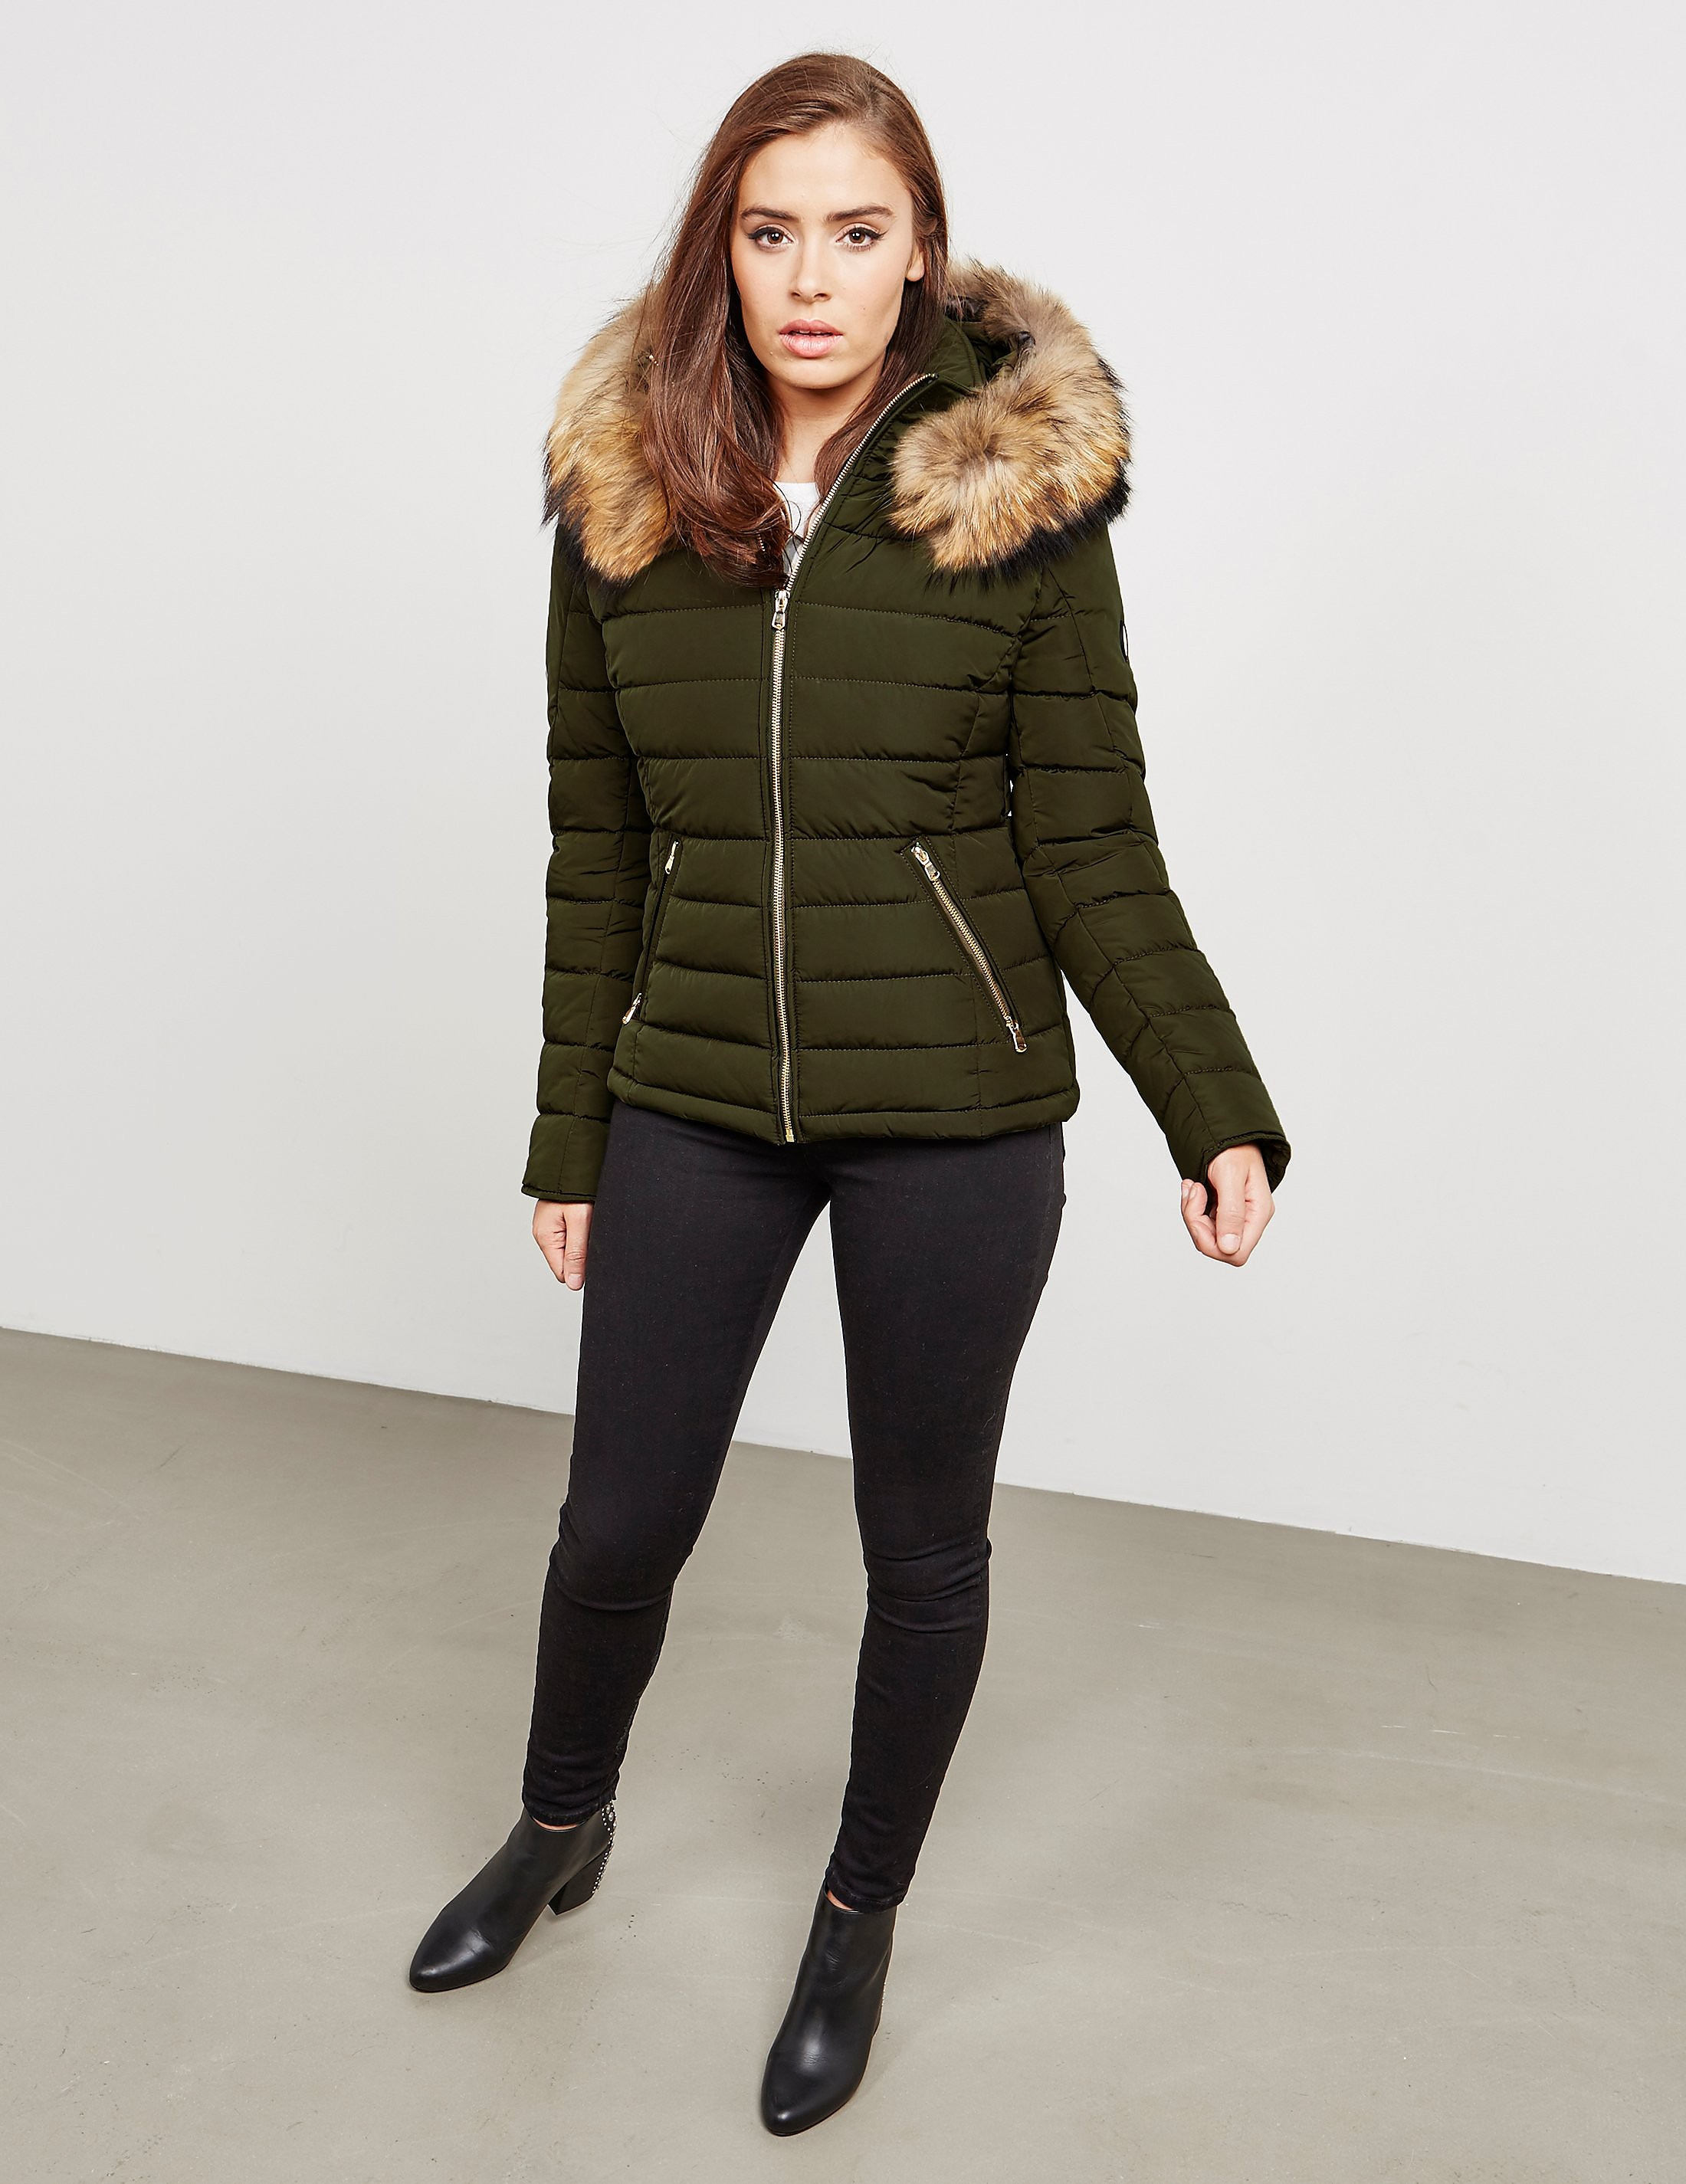 Froccella B-153 Big Fur Jacket